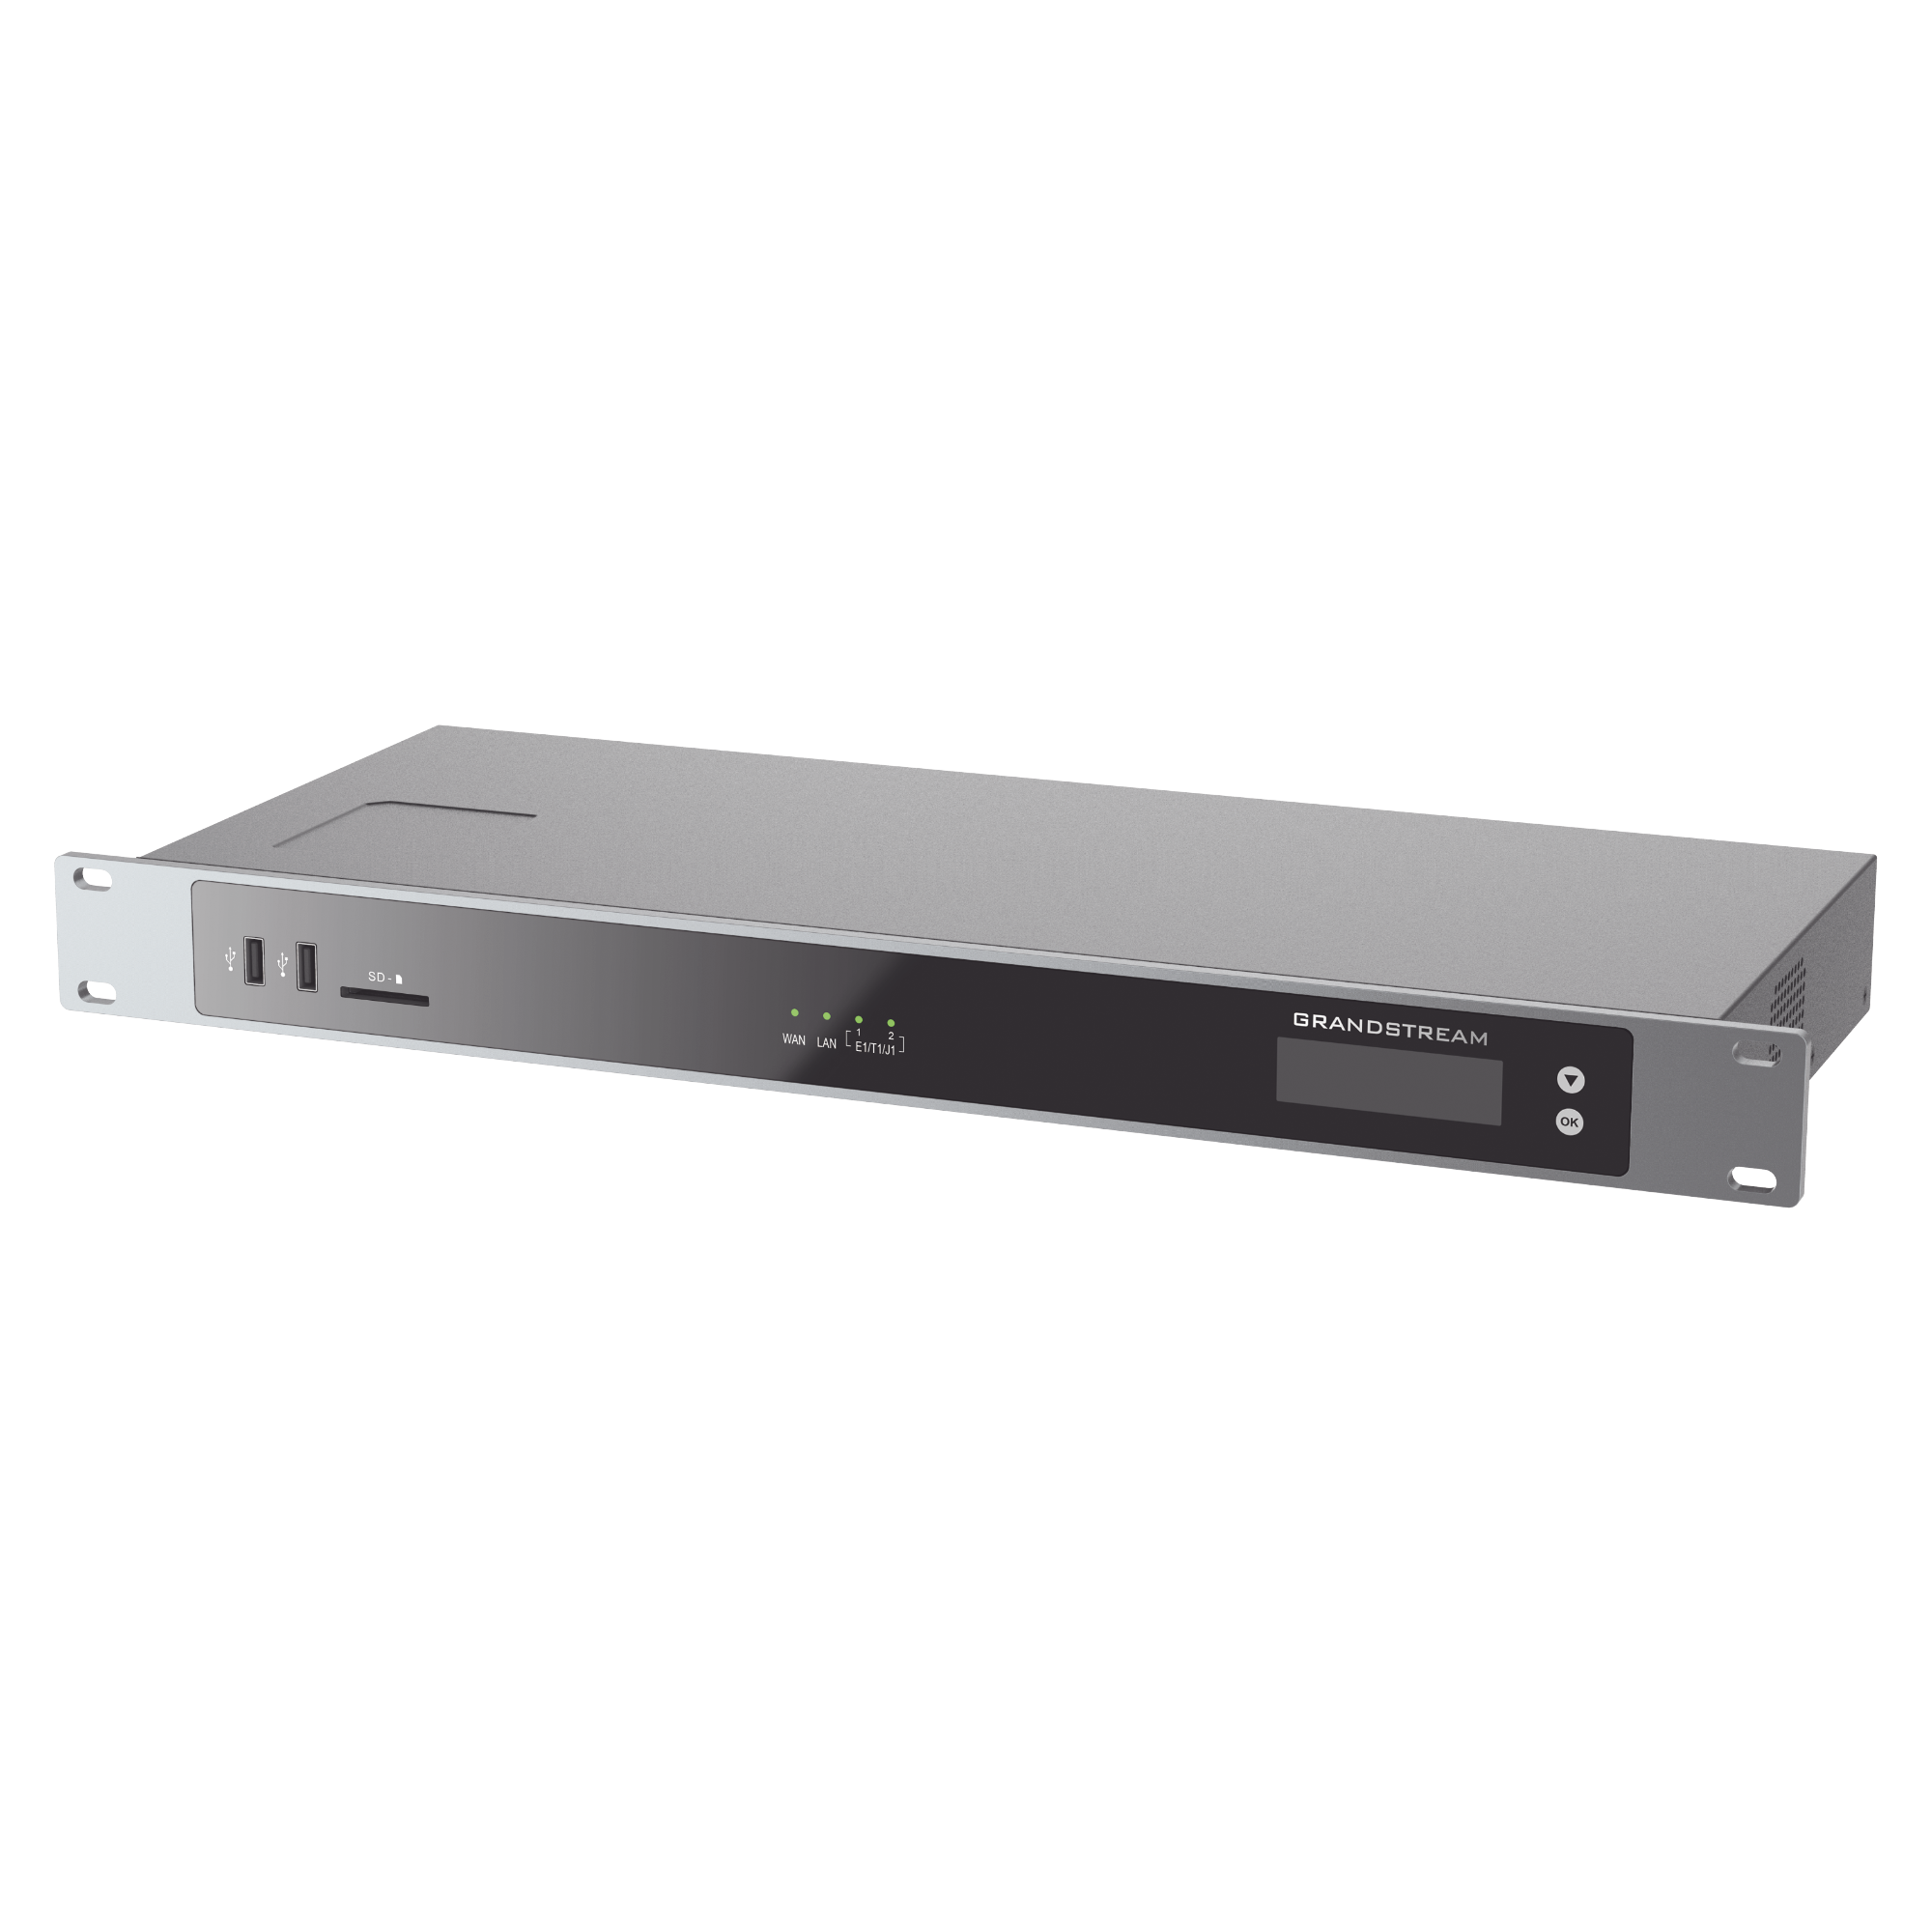 GATEWAY con 1 puerto E1/T1/J1 ideal para ampliar red de VoIP